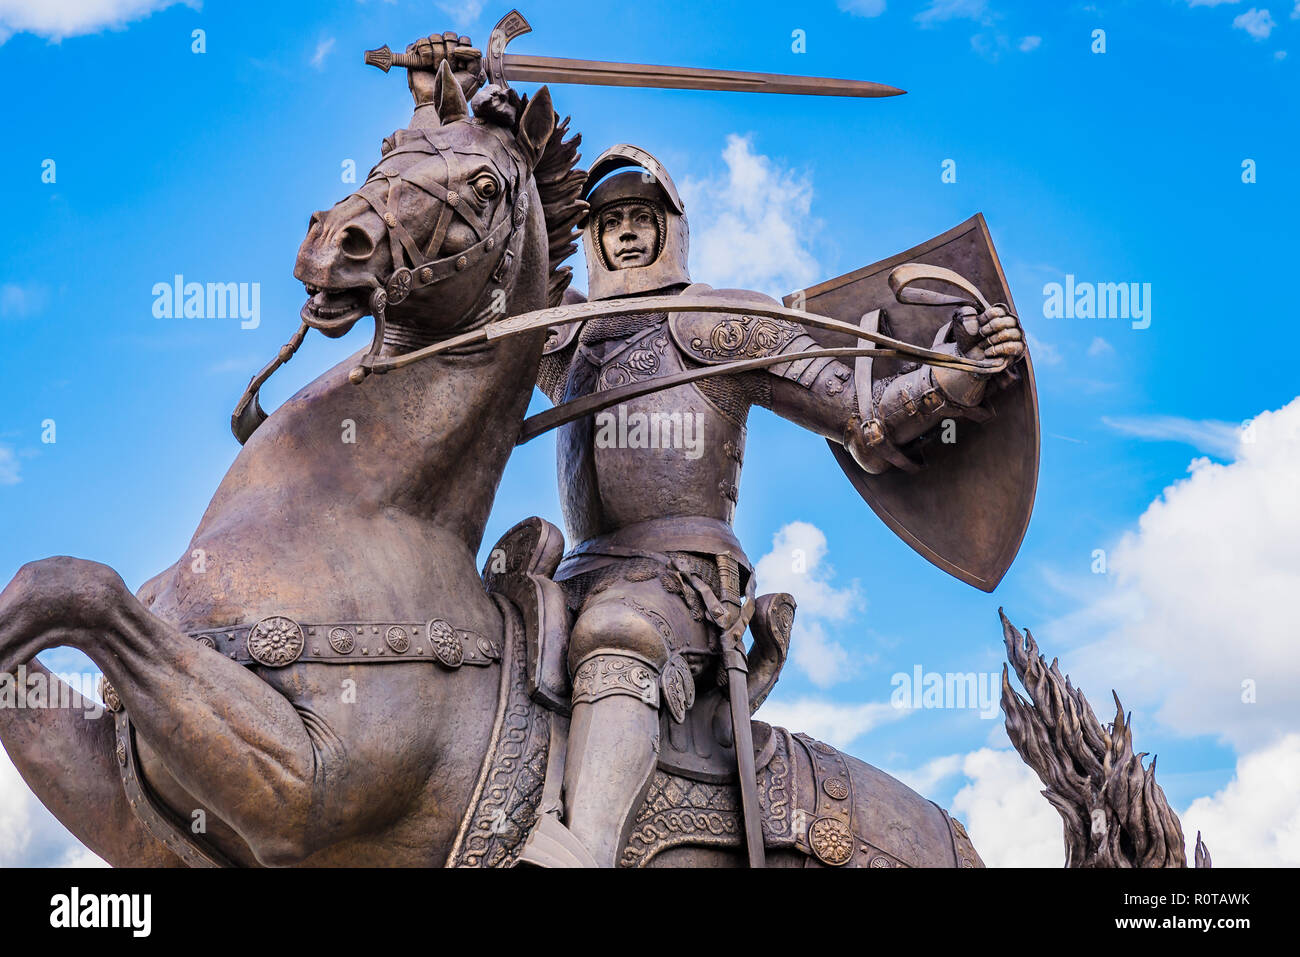 Monument to Vytis, Vytautas the Great. Kaunas, Kaunas County, Lithuania, Baltic states, Europe. - Stock Image